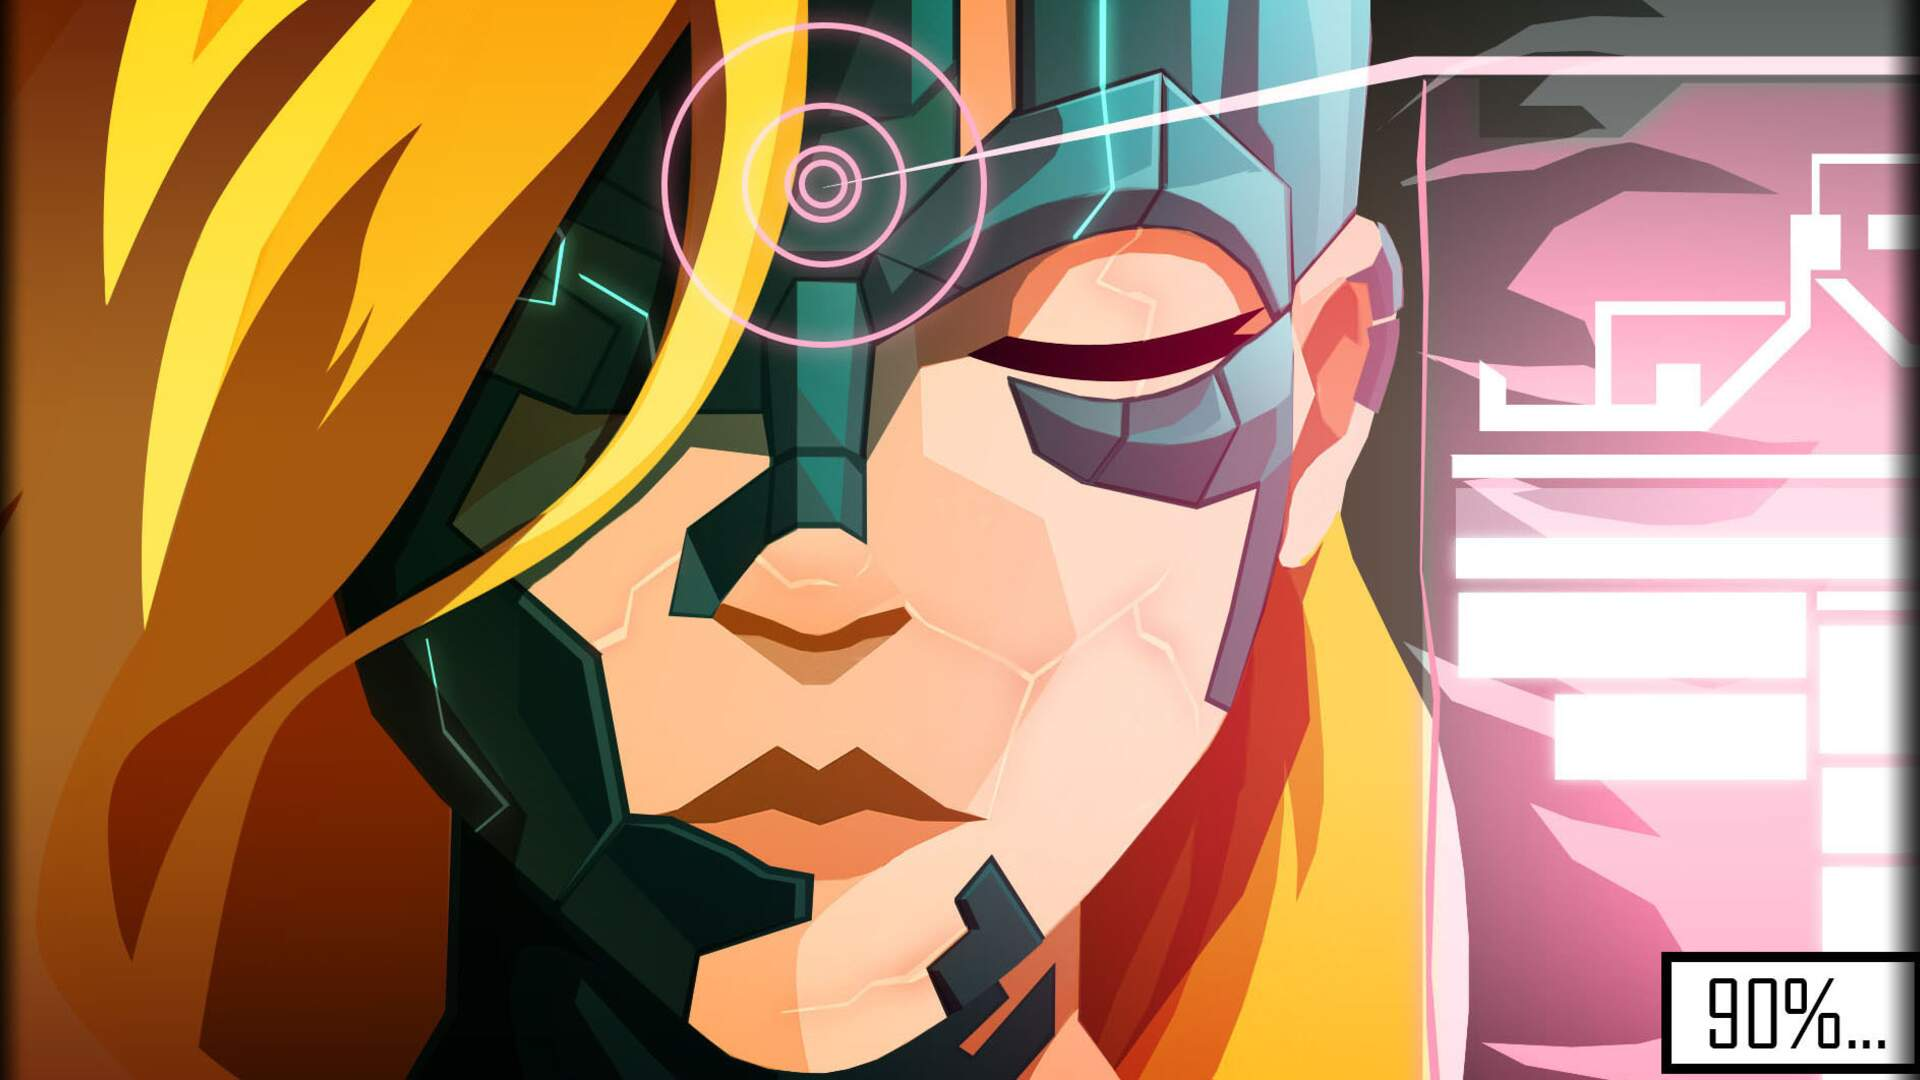 FuturLab Will Pay You $7.50 If You Don't Like Their Game